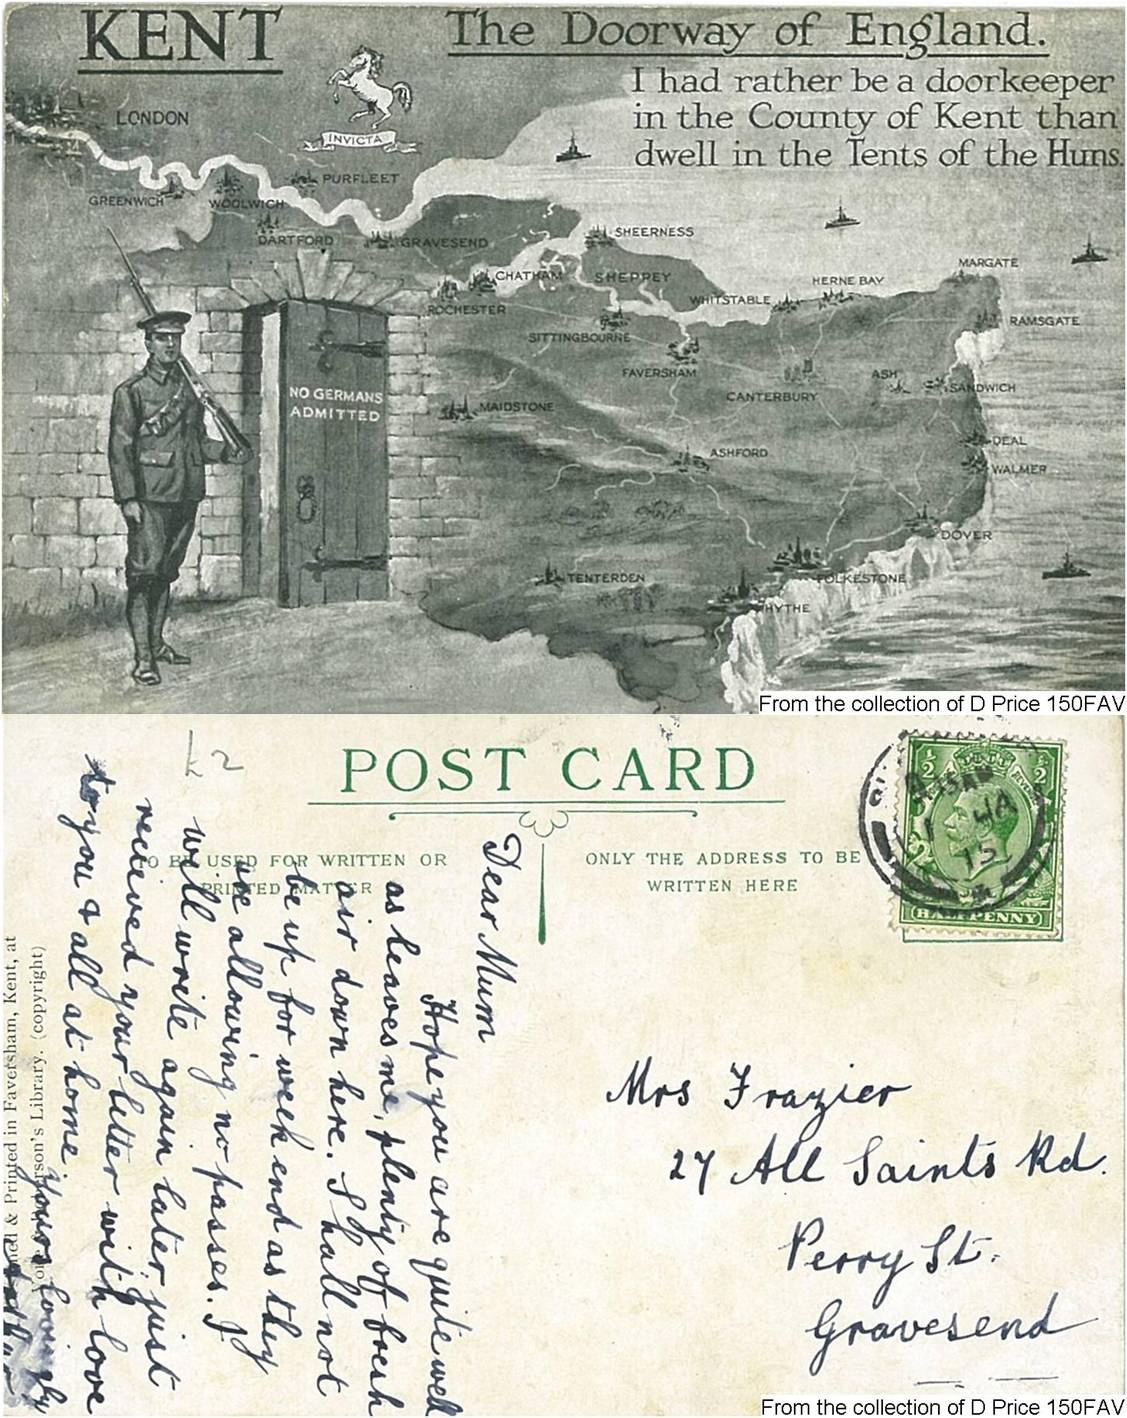 150FAV - The Doorway Of Kent (Postcard) (Front & Back)